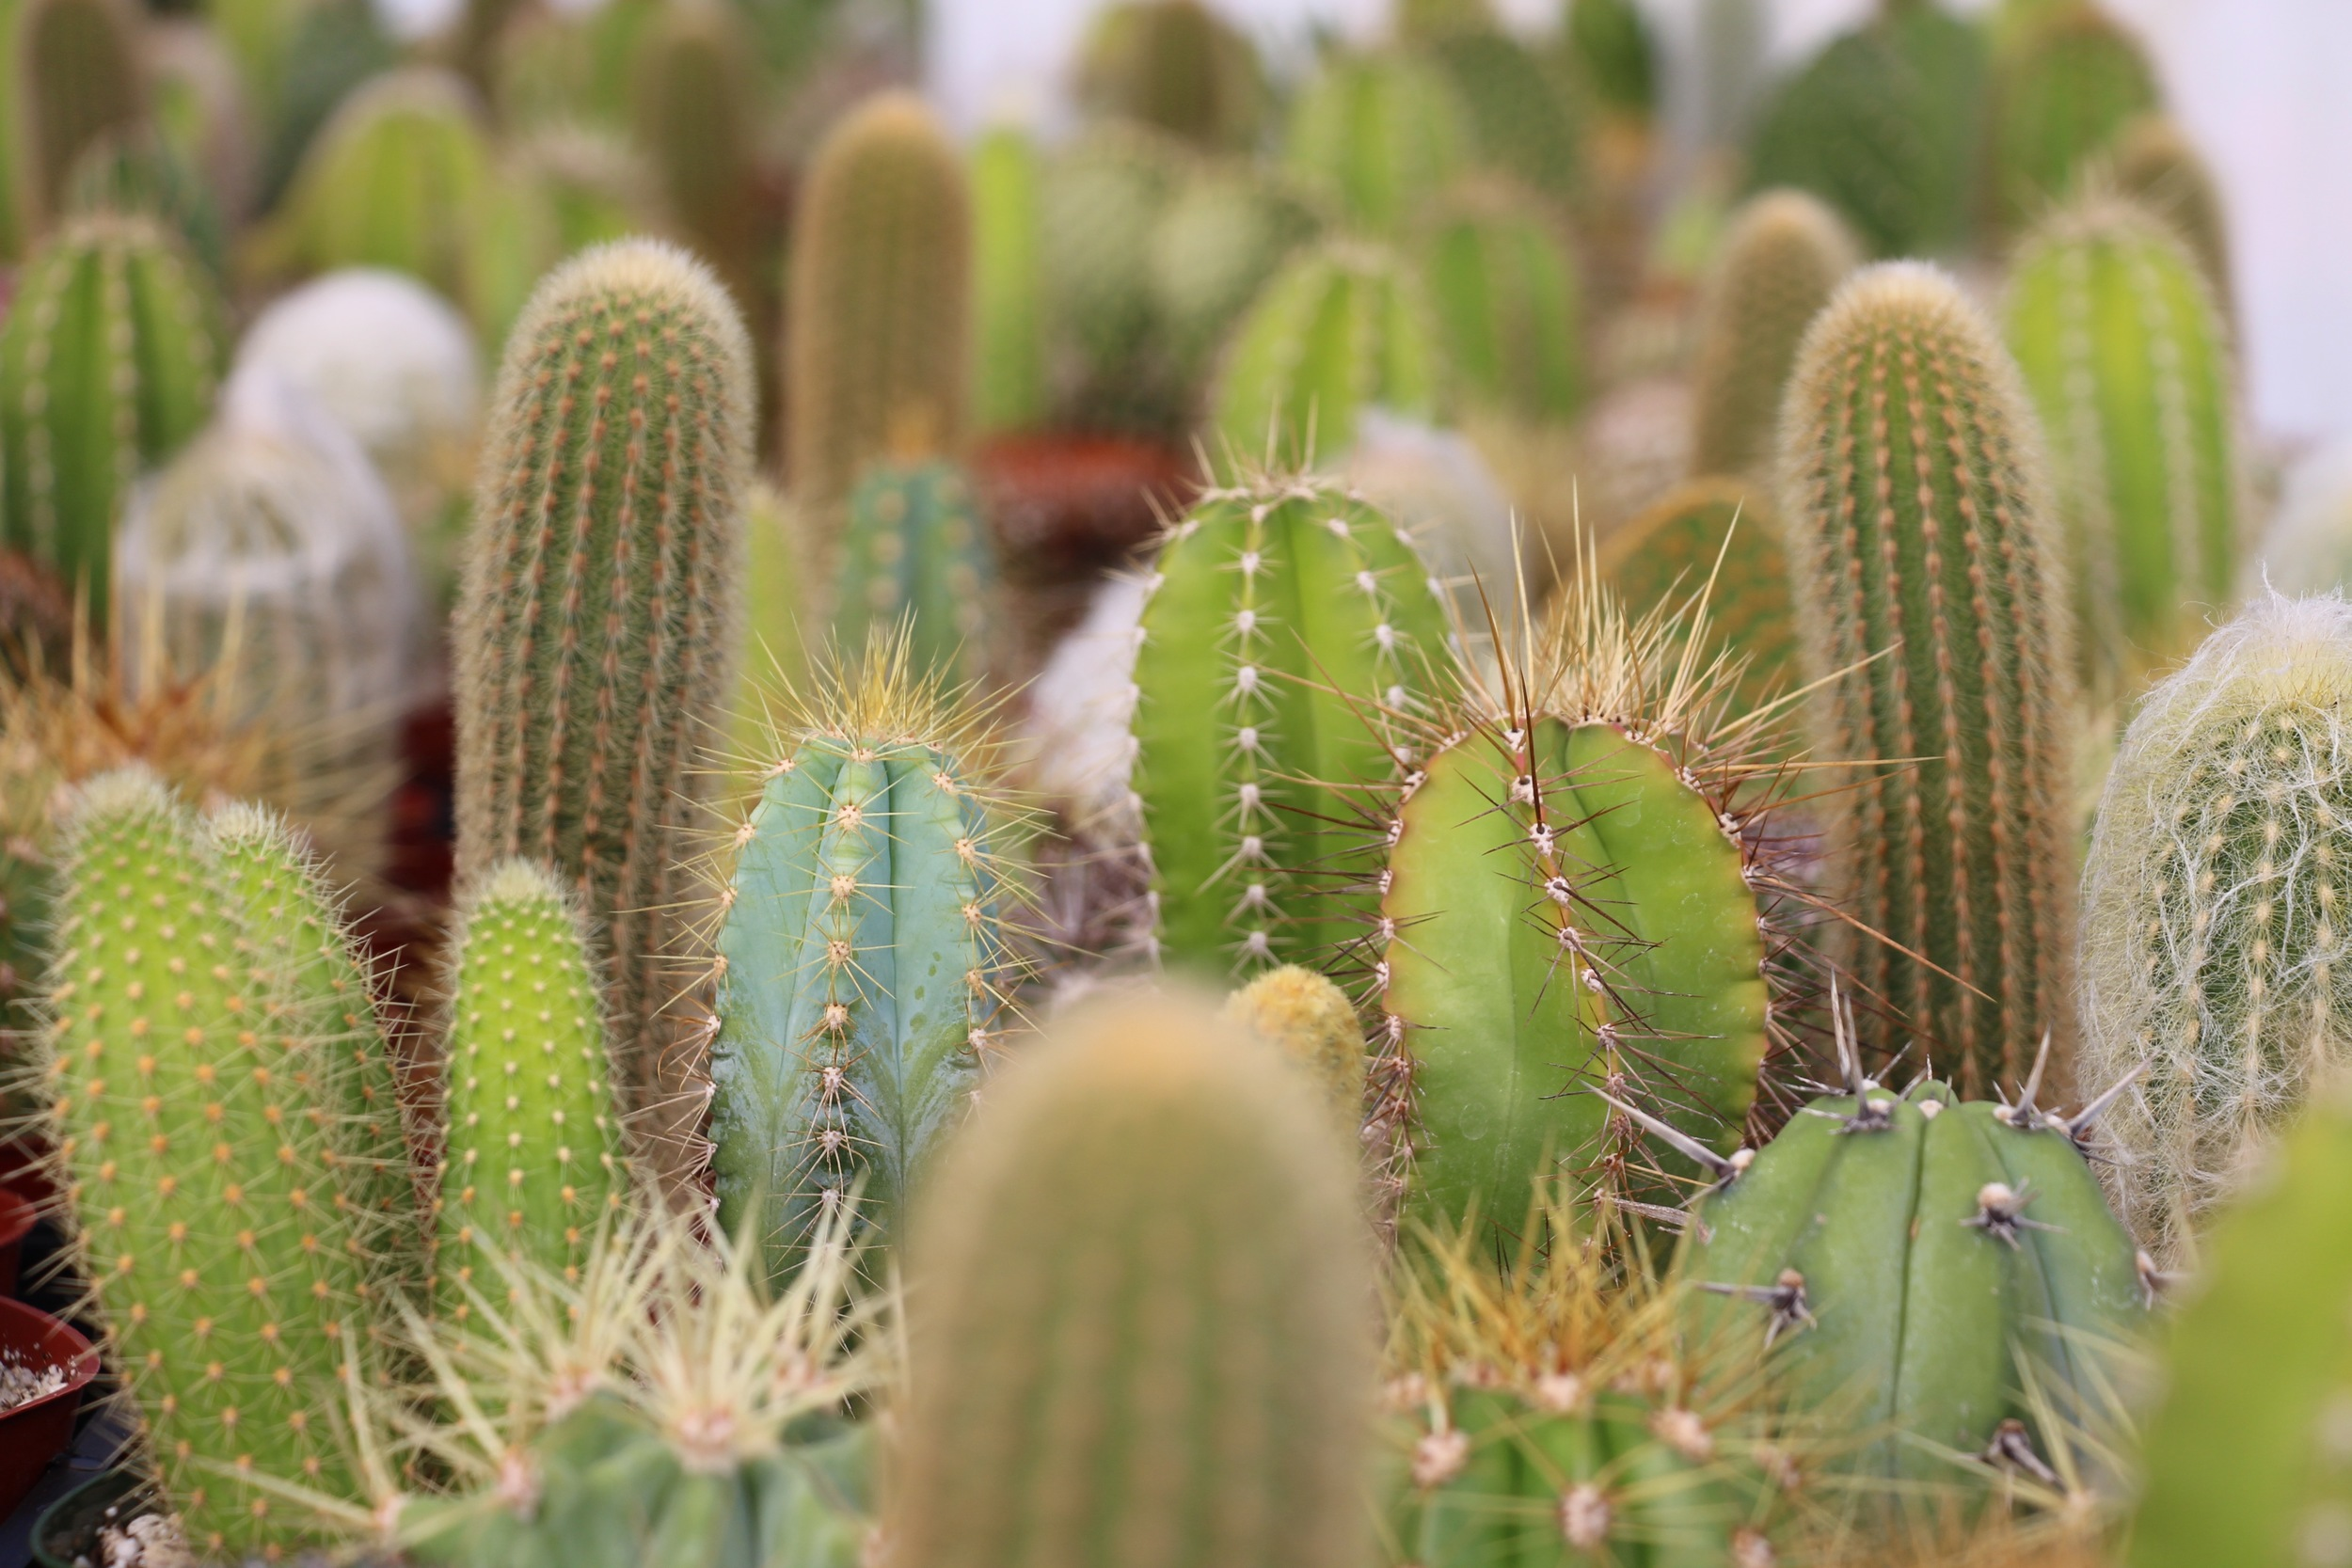 Rancho Vista Nursery in Vista, California. Quality cactus and succulents sold wholesale to the trade and public.